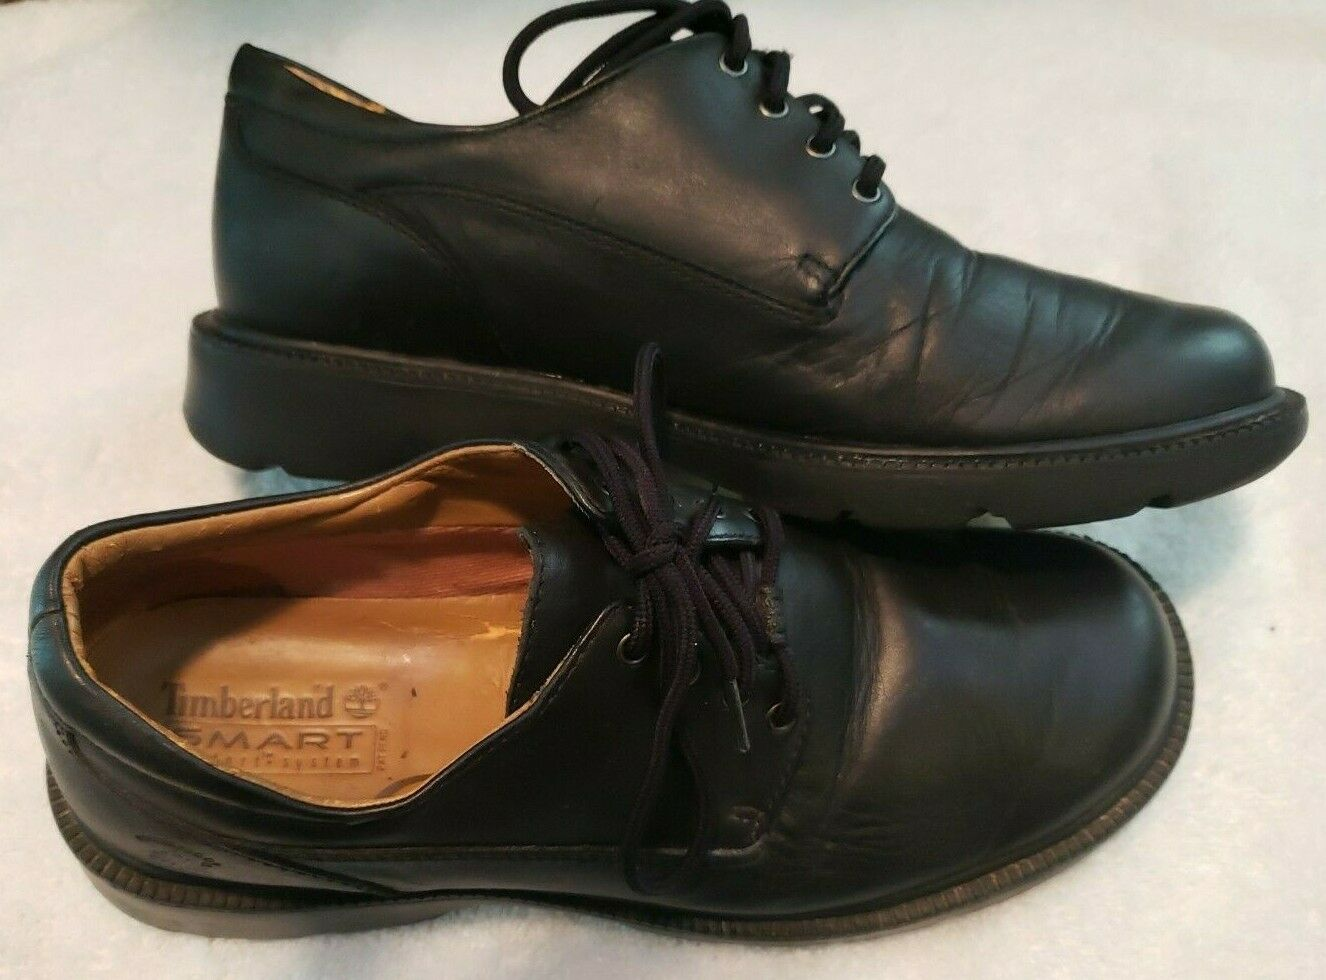 Timberland Smart Comfort Oxford Black Leather WATERPROOF Shoes Women's 8M